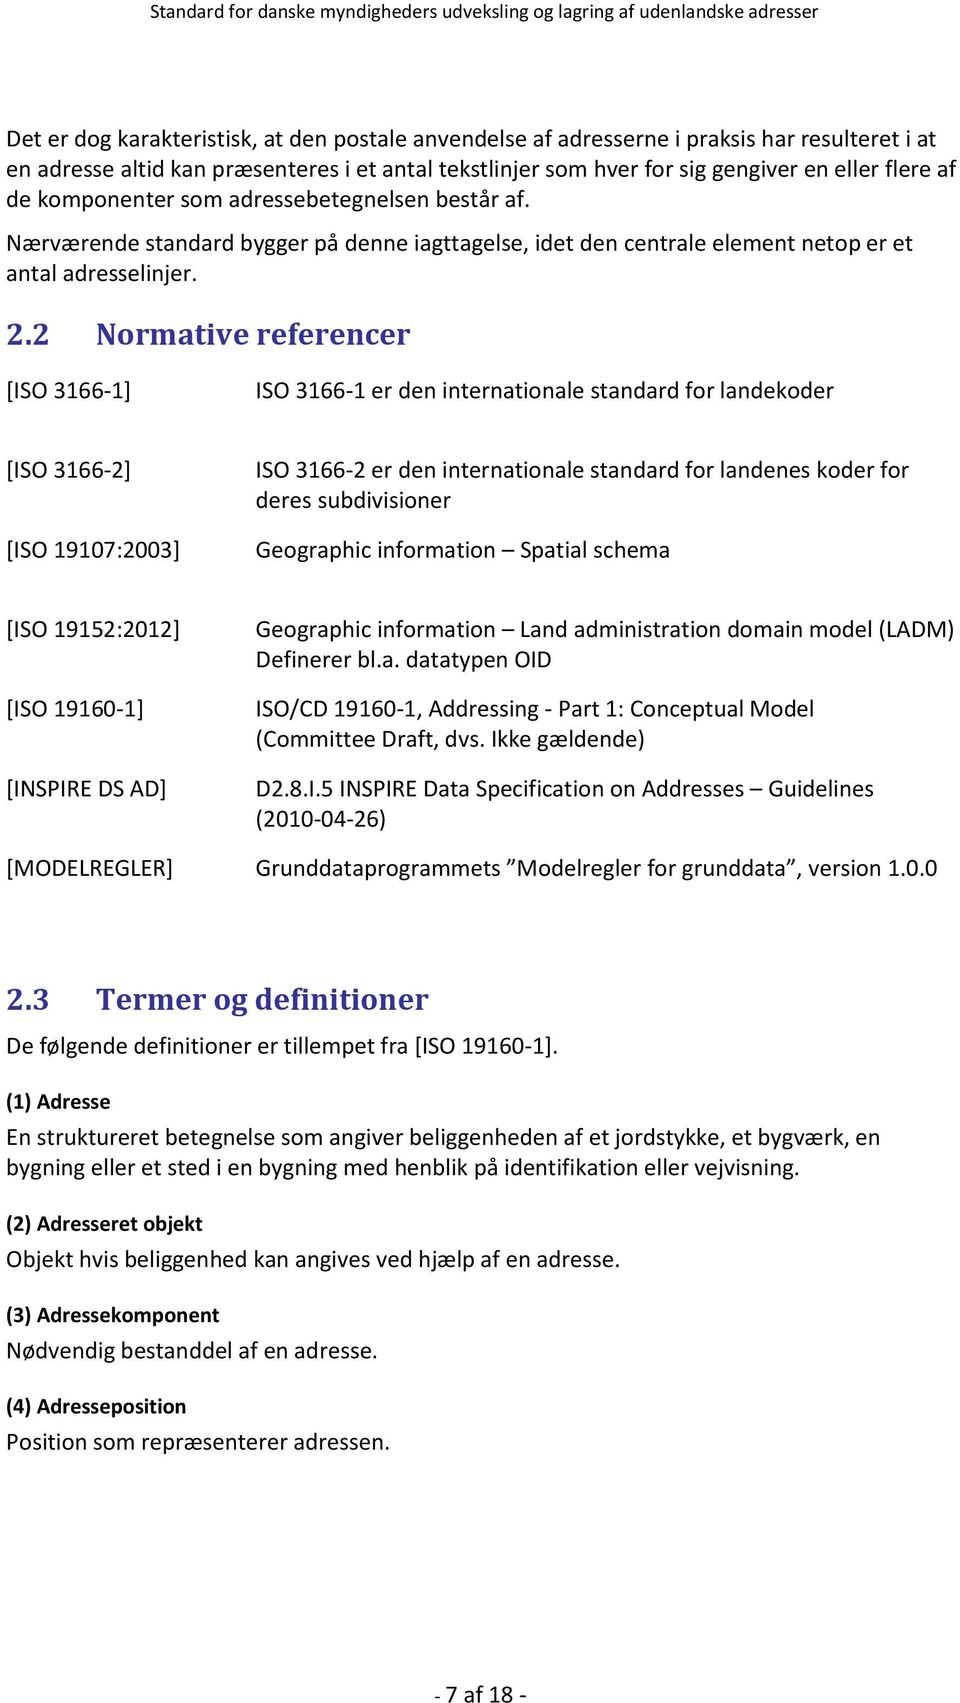 2 Normative referencer [ISO 3166-1] ISO 3166-1 er den internationale standard for landekoder [ISO 3166-2] [ISO 19107:2003] ISO 3166-2 er den internationale standard for landenes koder for deres